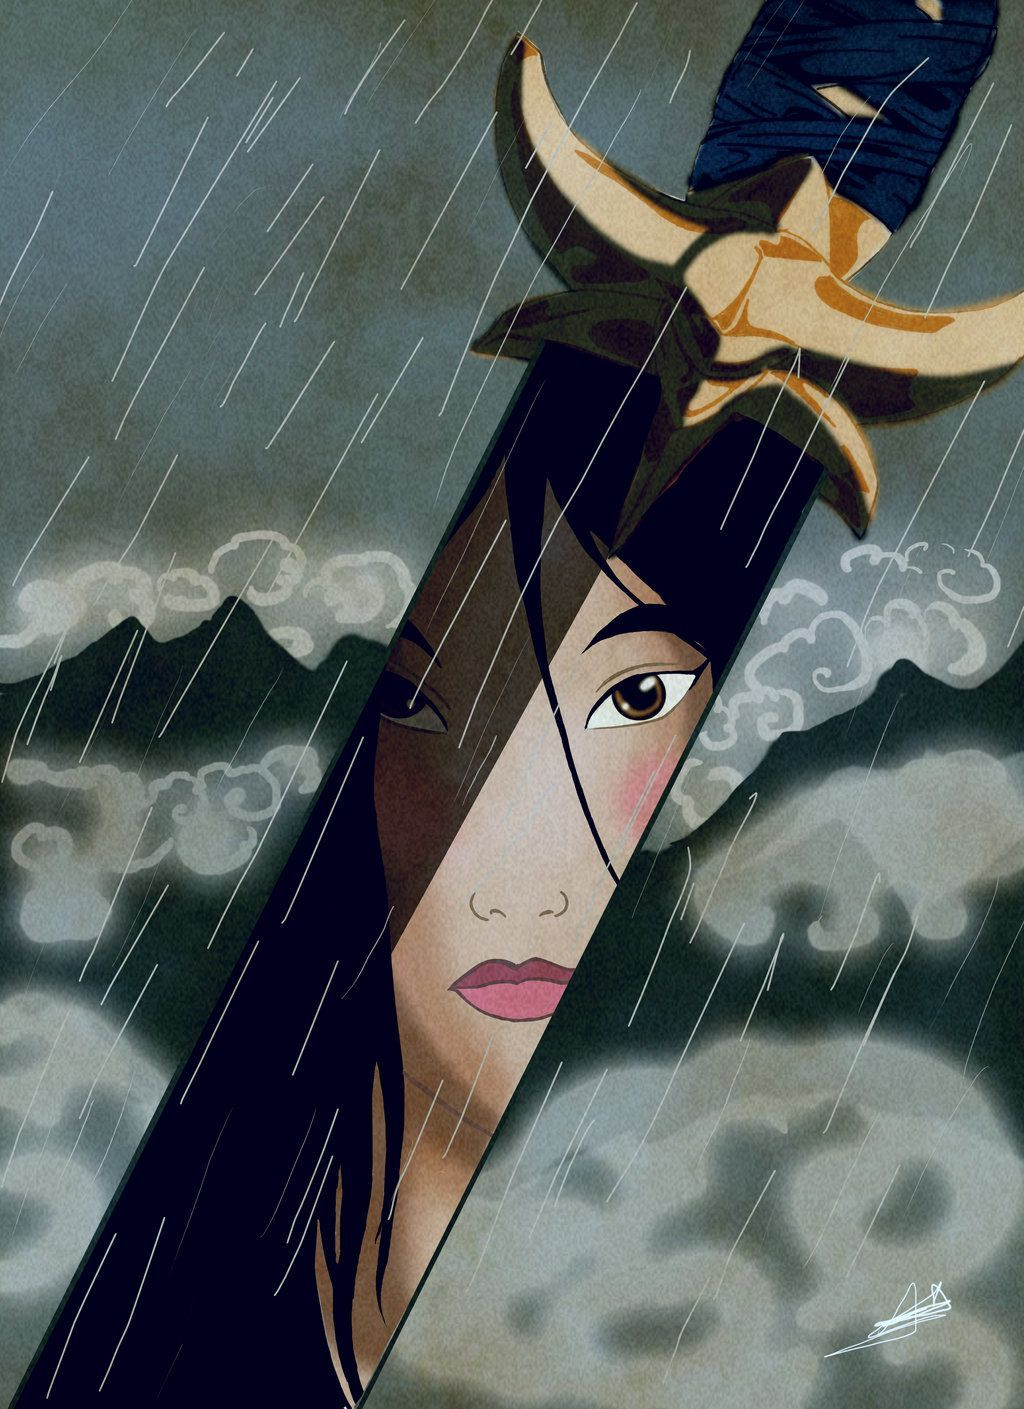 Day Bravest Princess: I'd have to say Mulan.) In honor of Mulan's anniversary // Movie Friday: 15 Artist Recreations of Disney's Mulan